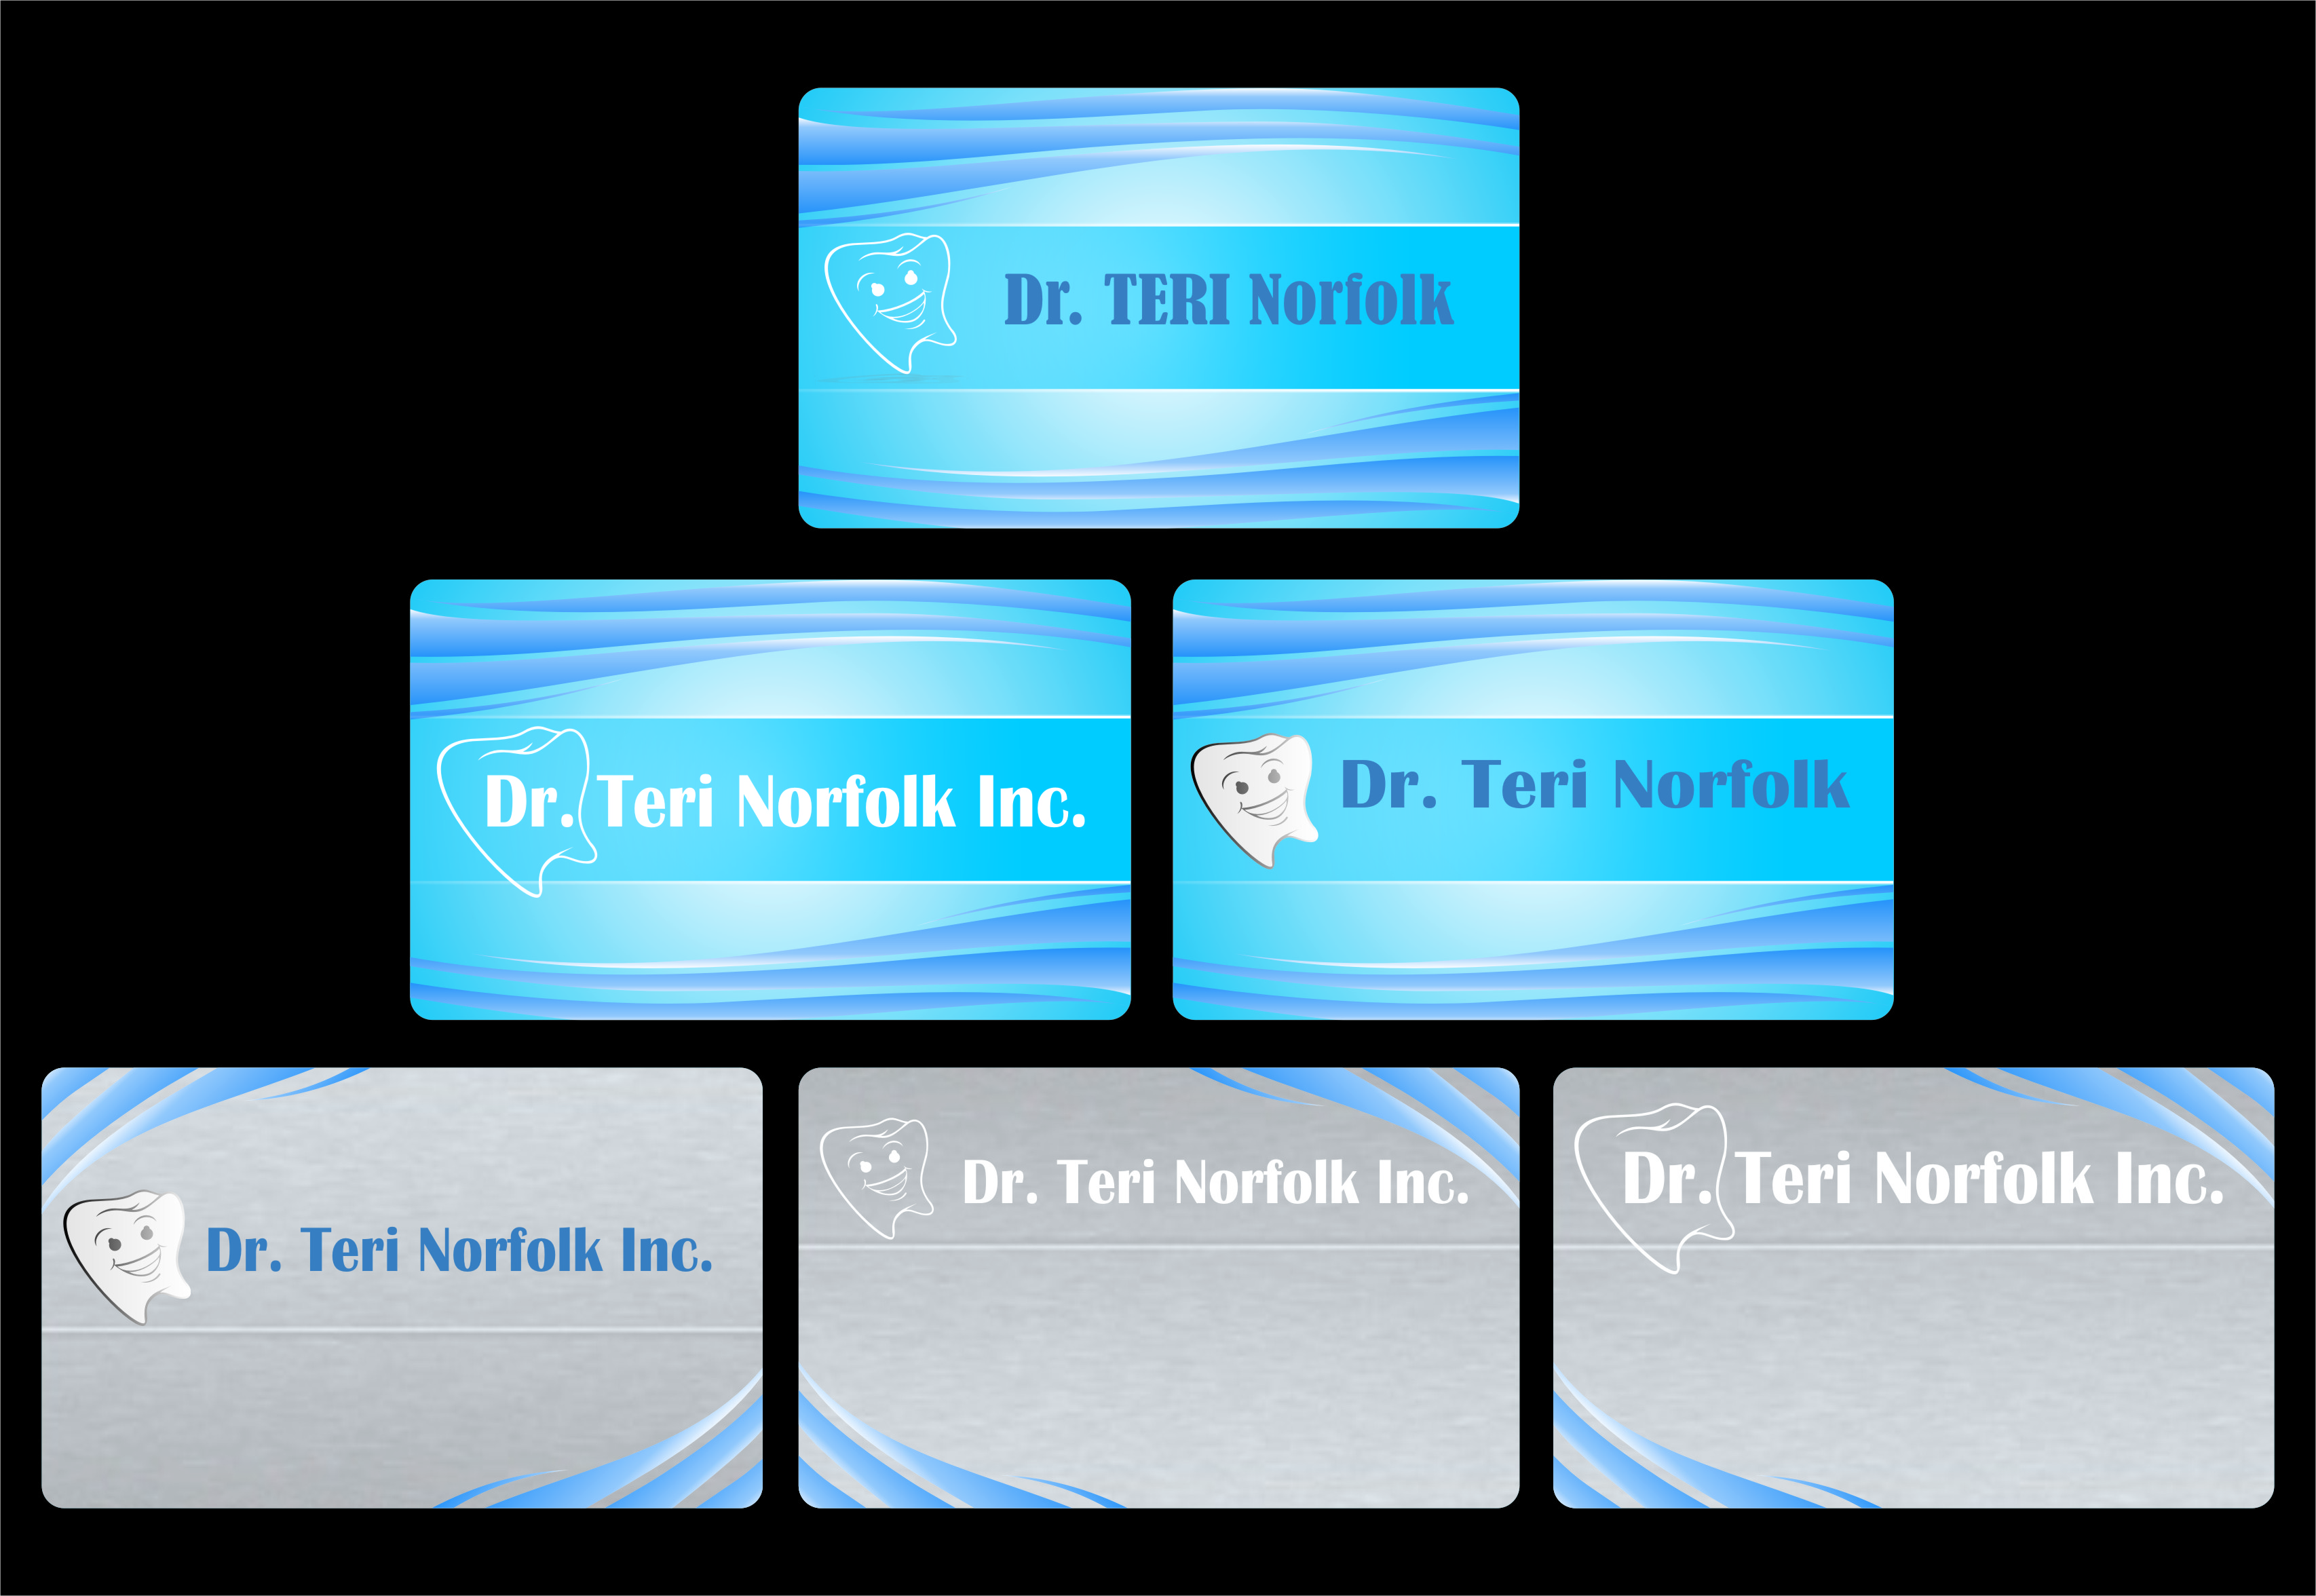 Business Card Design by Ngepet_art - Entry No. 19 in the Business Card Design Contest Unique Business Card Design Wanted for Dr. Teri Norfolk Inc..